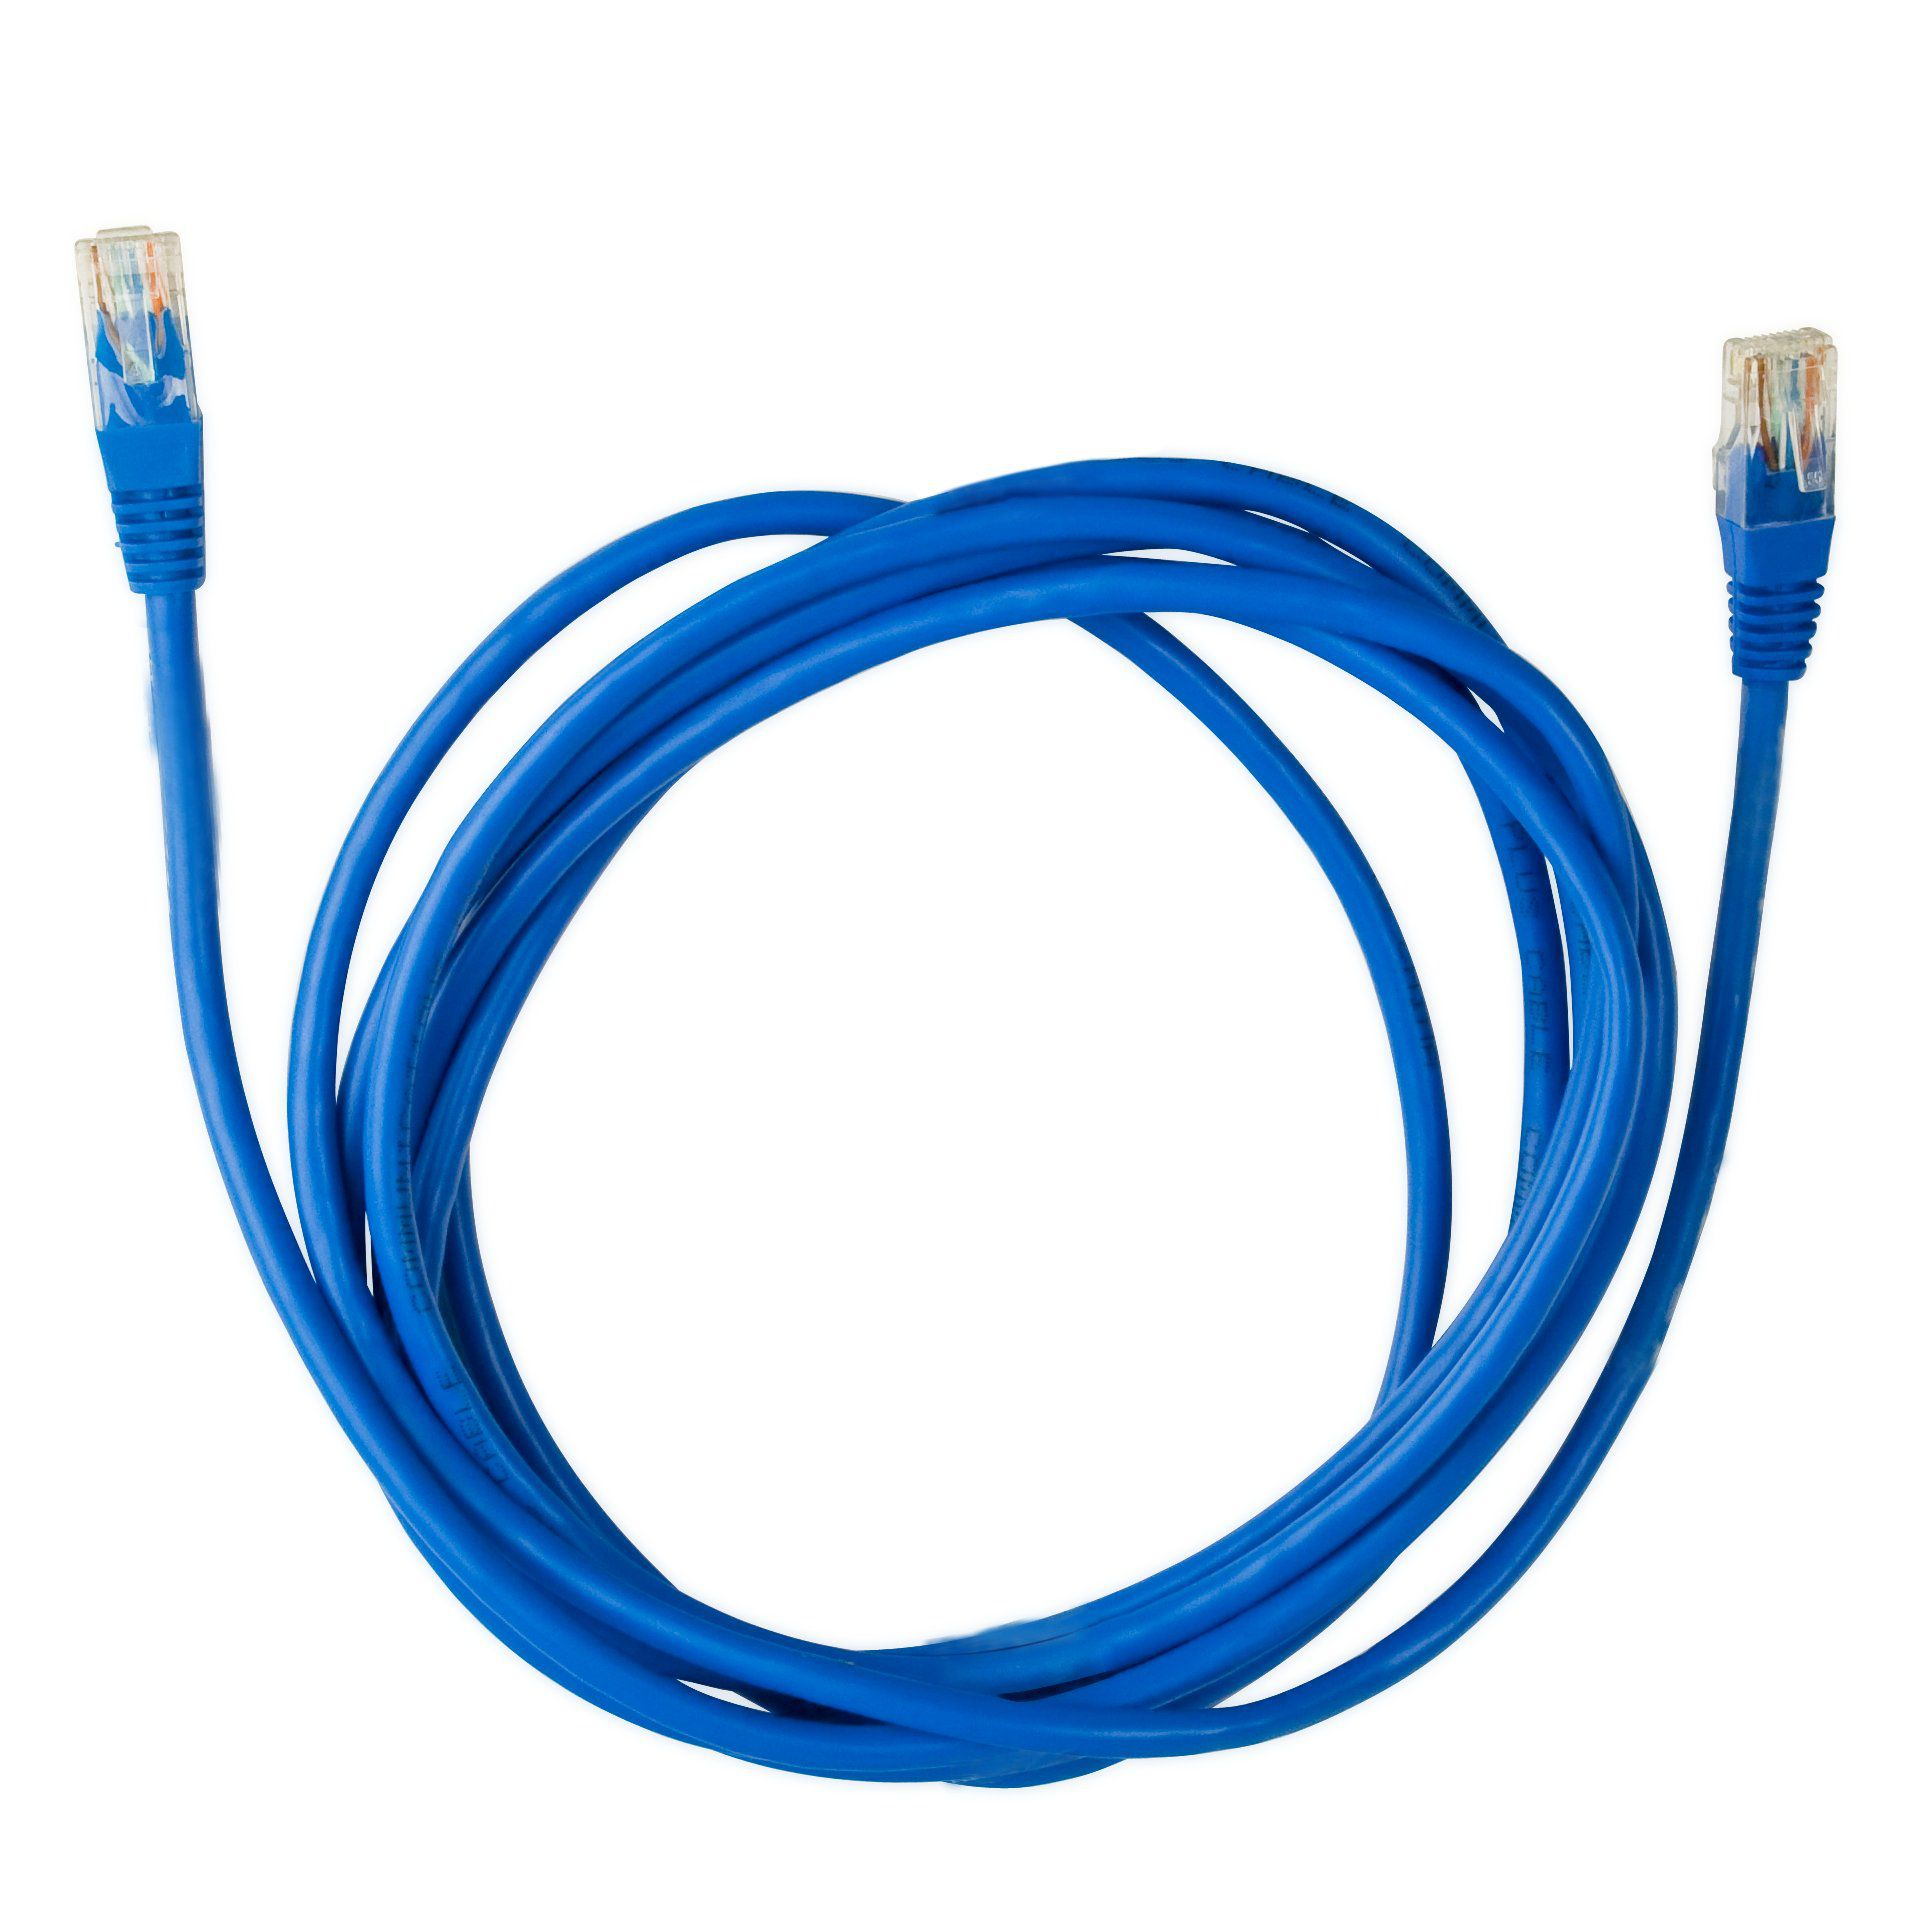 CABO DE REDE/PATCH CORD CAT6 3MT PC-ETH6E3001 - PLUS CABLE